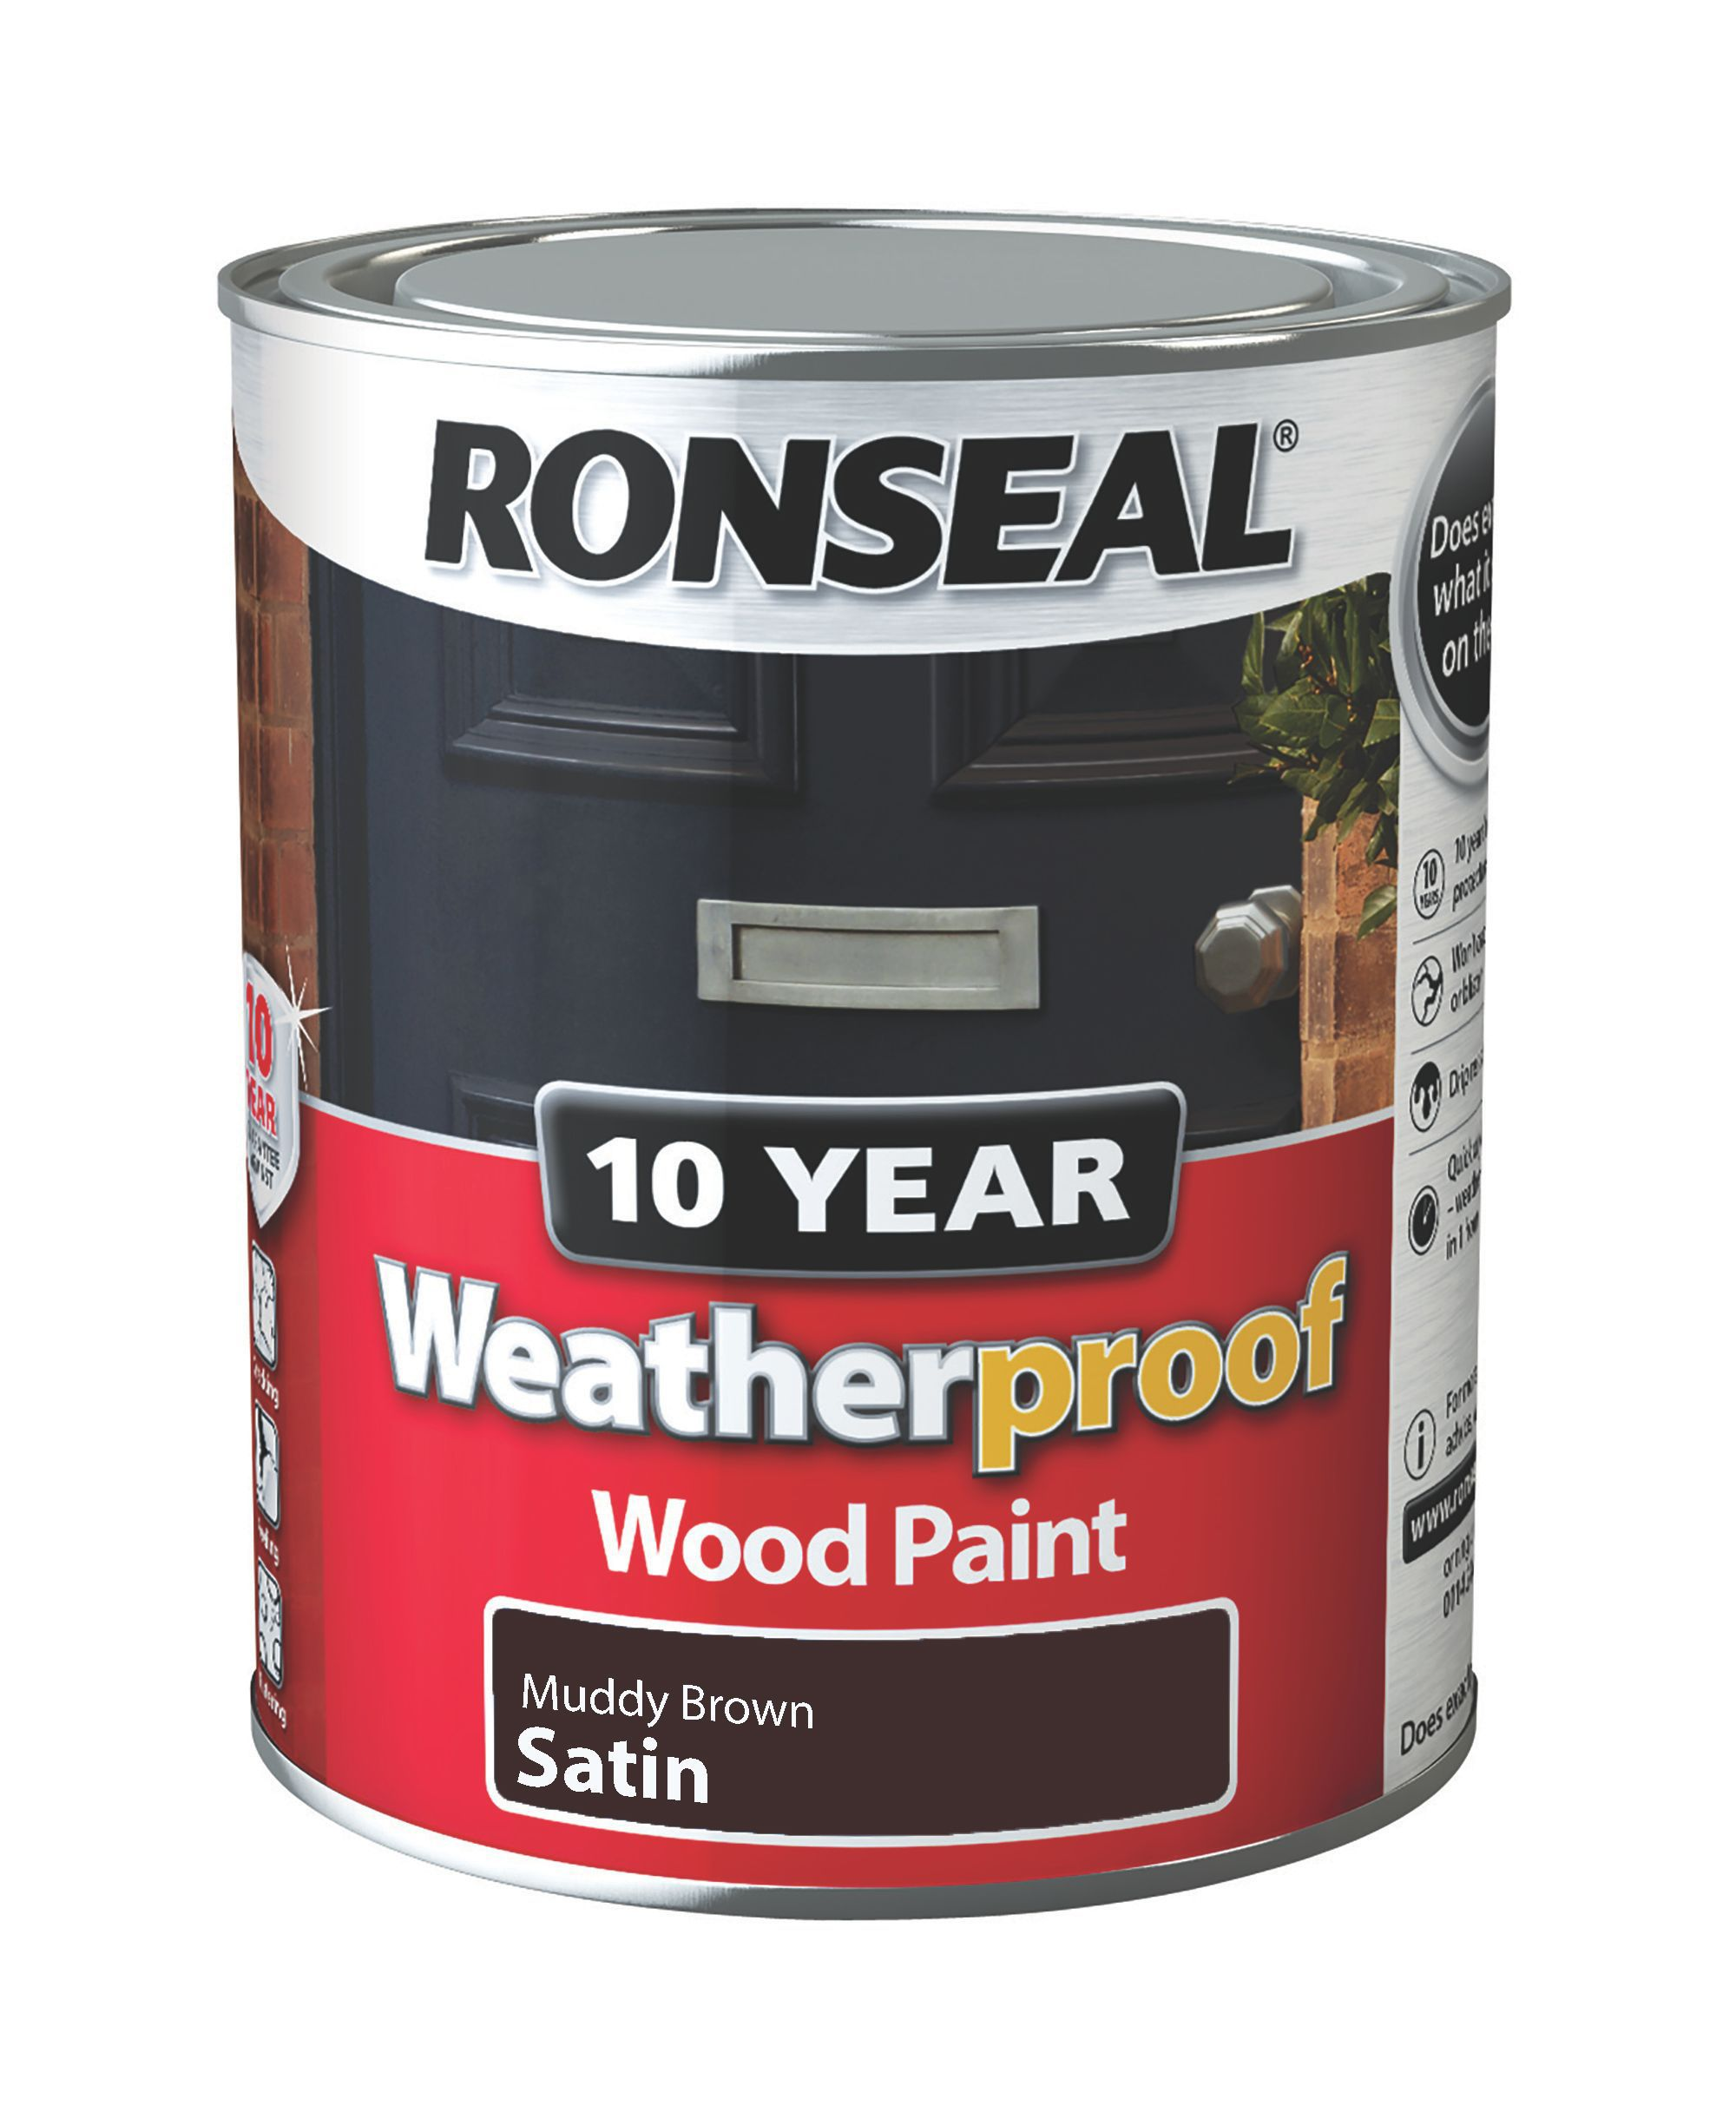 Ronseal Muddy Brown Satin Wood Paint 750ml